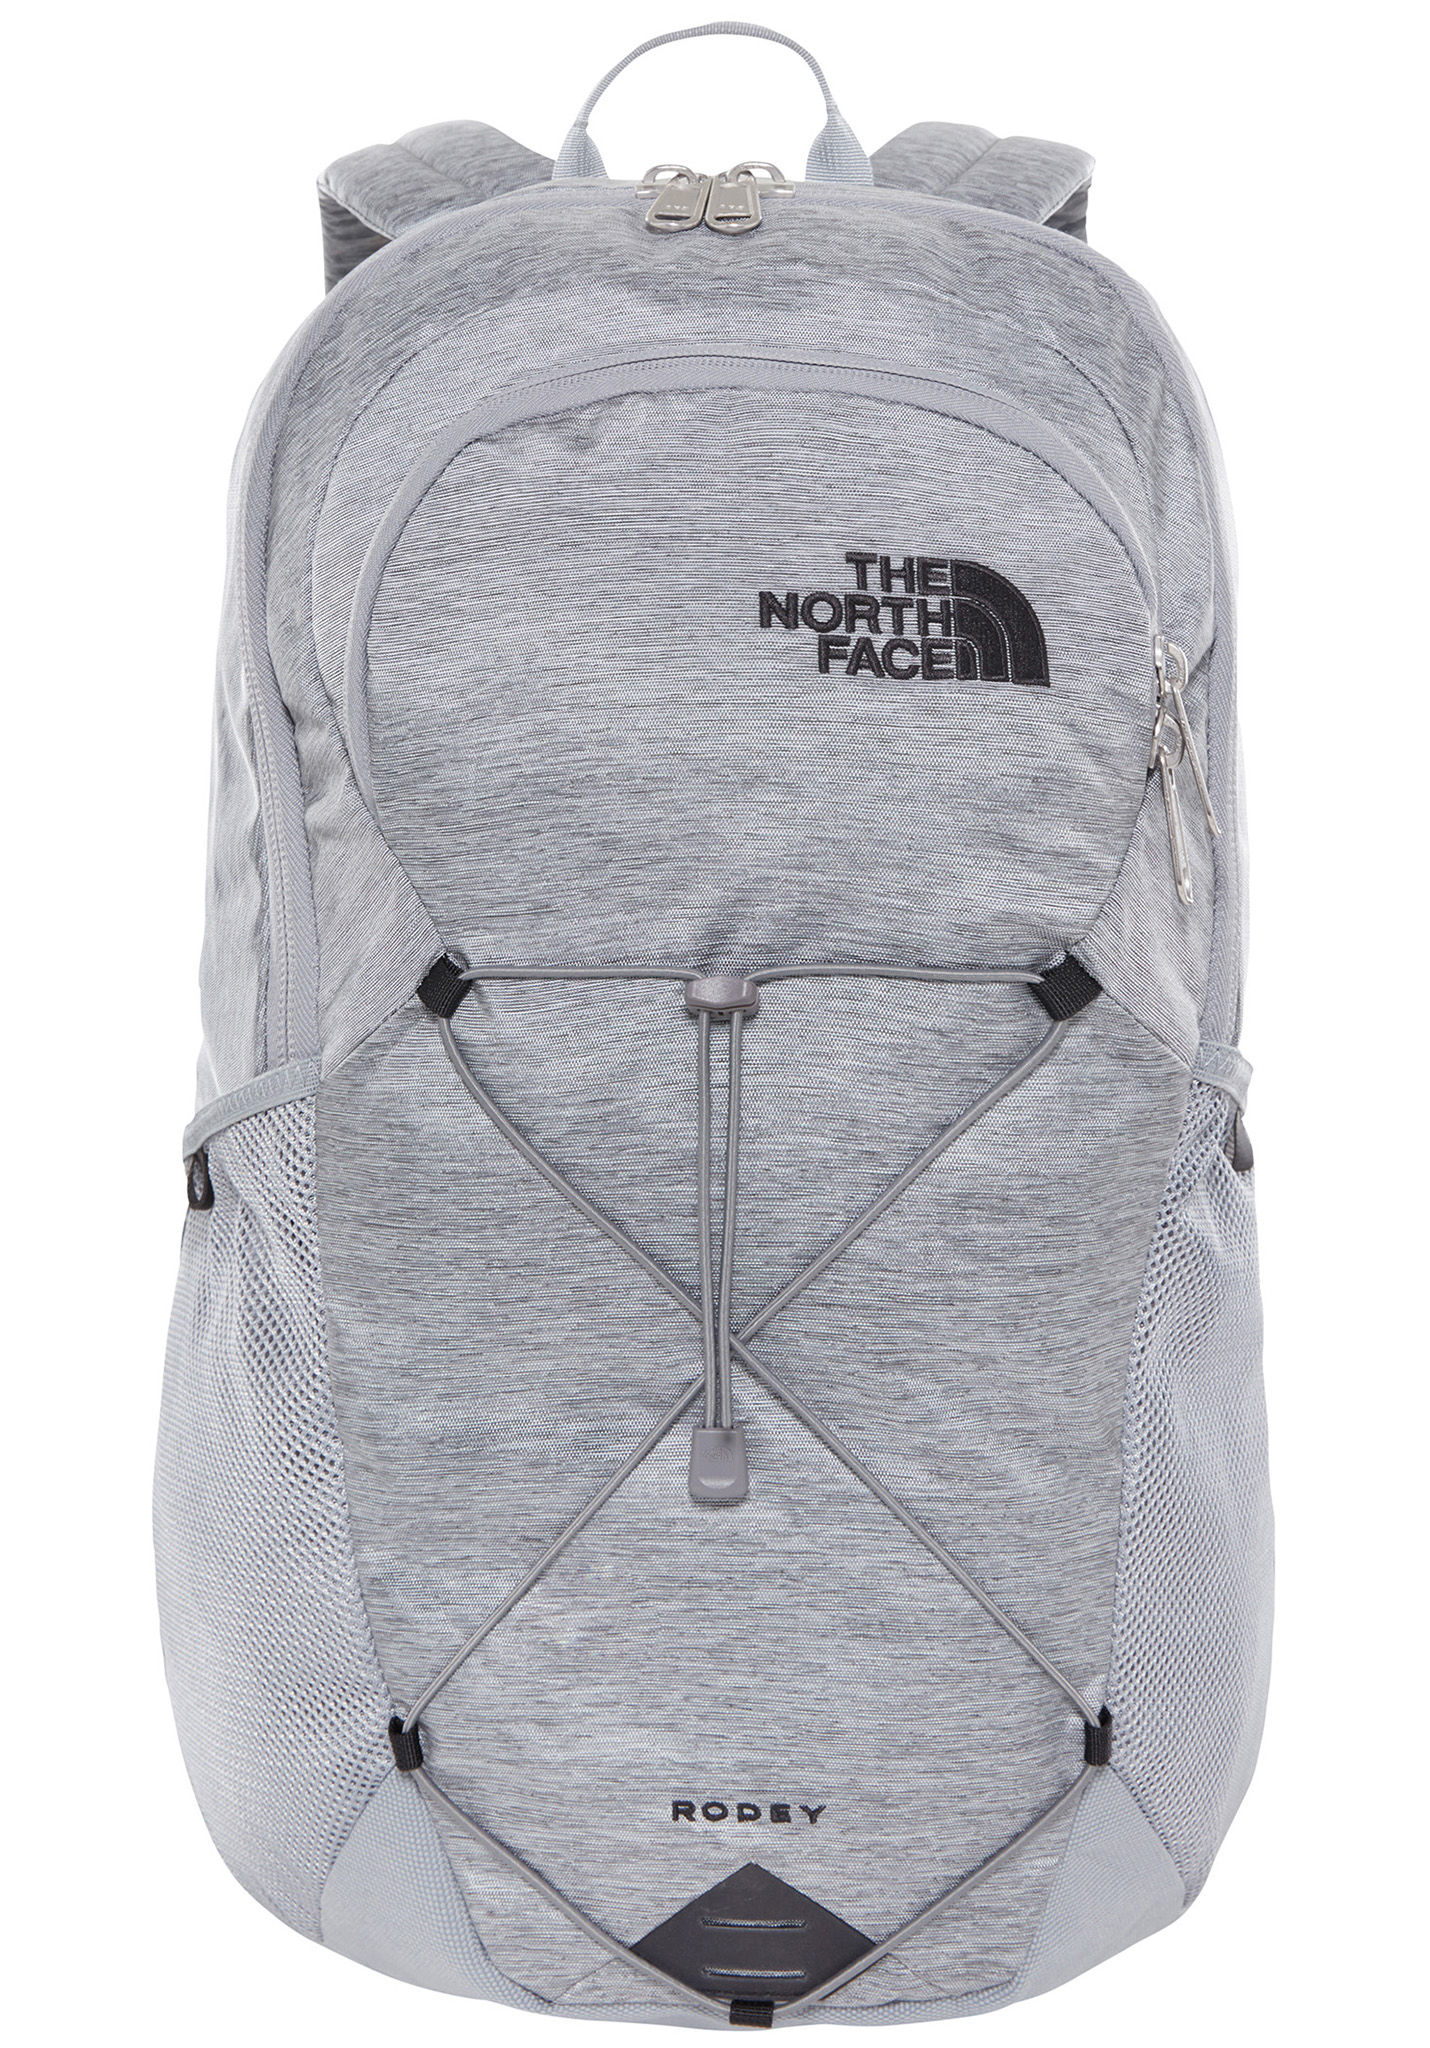 ee23f22611 THE NORTH FACE Rodey - Zaino - Grigio - Planet Sports